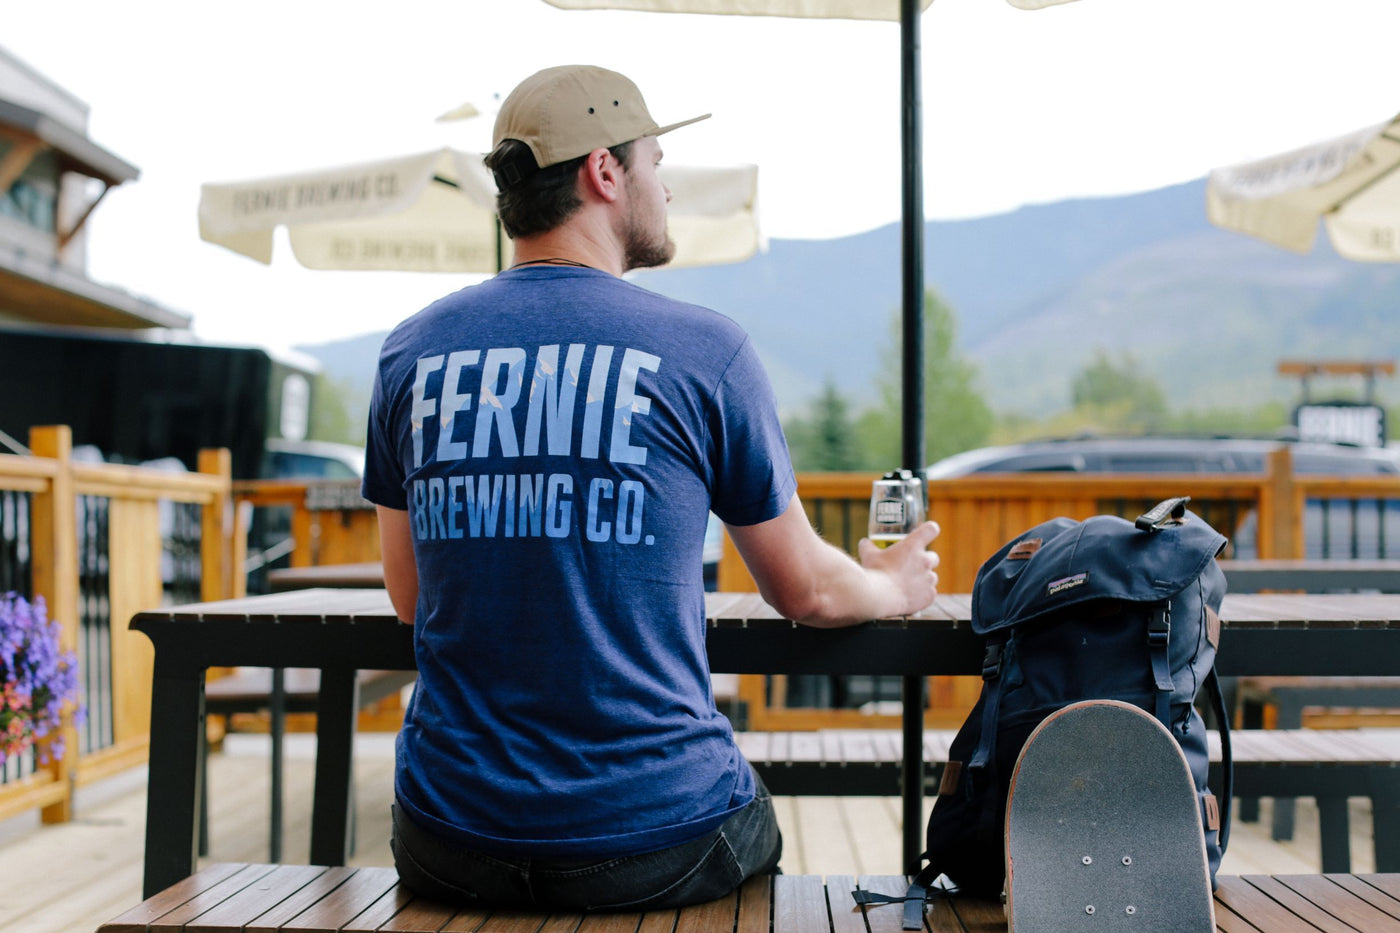 Man in blue shirt sits on a patio drinking a beer with a skateboard and bag to his right.